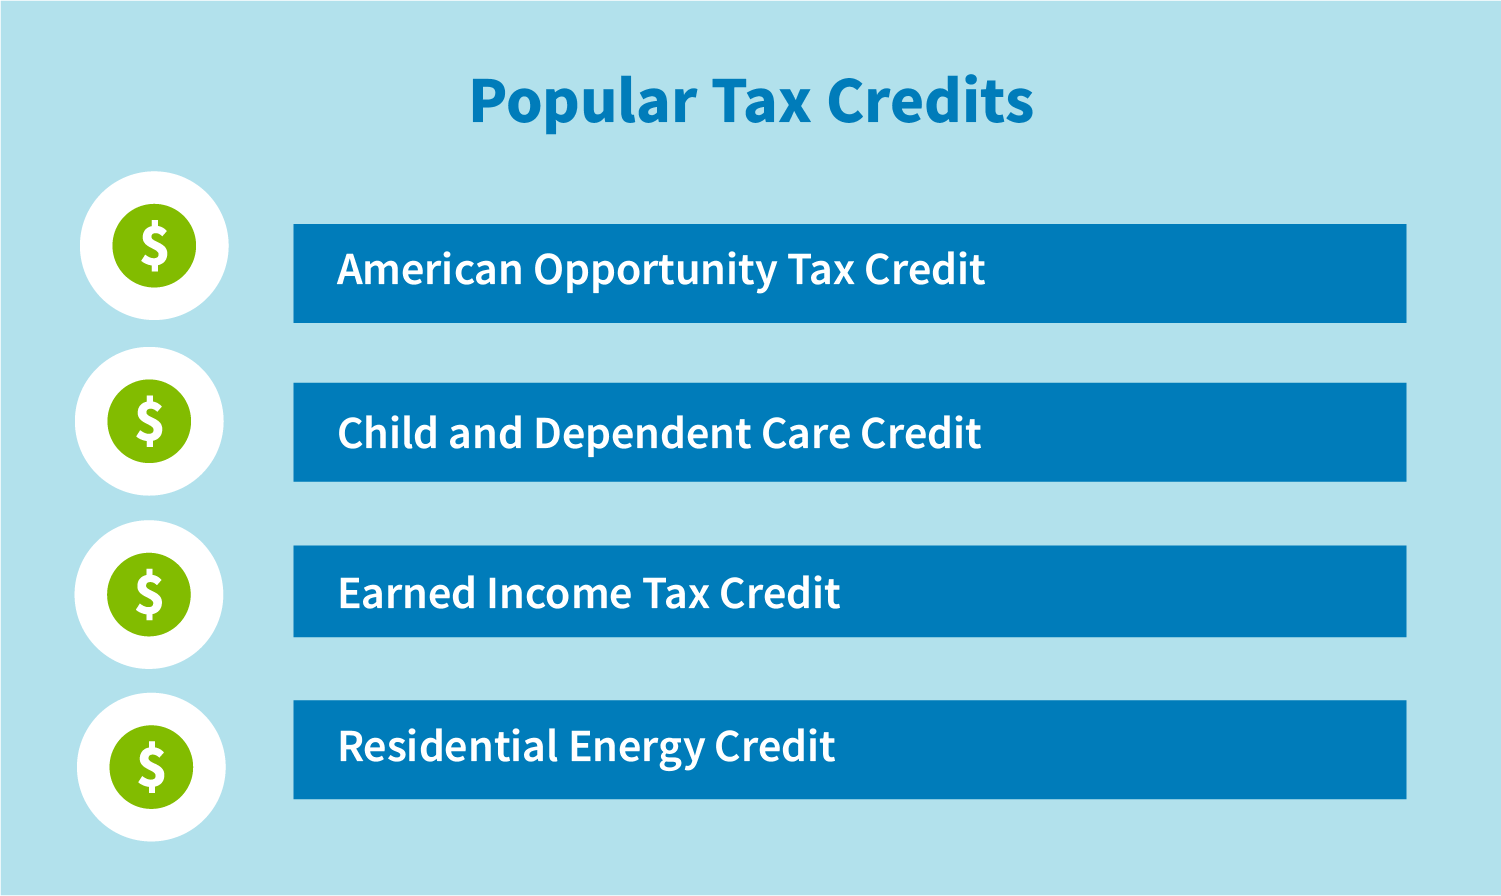 Popular Tax Credits: American Opportunity Tax Credit, Child and Dependent Care Credit, Earned Income Tax Credit, Residential Energy Credit.